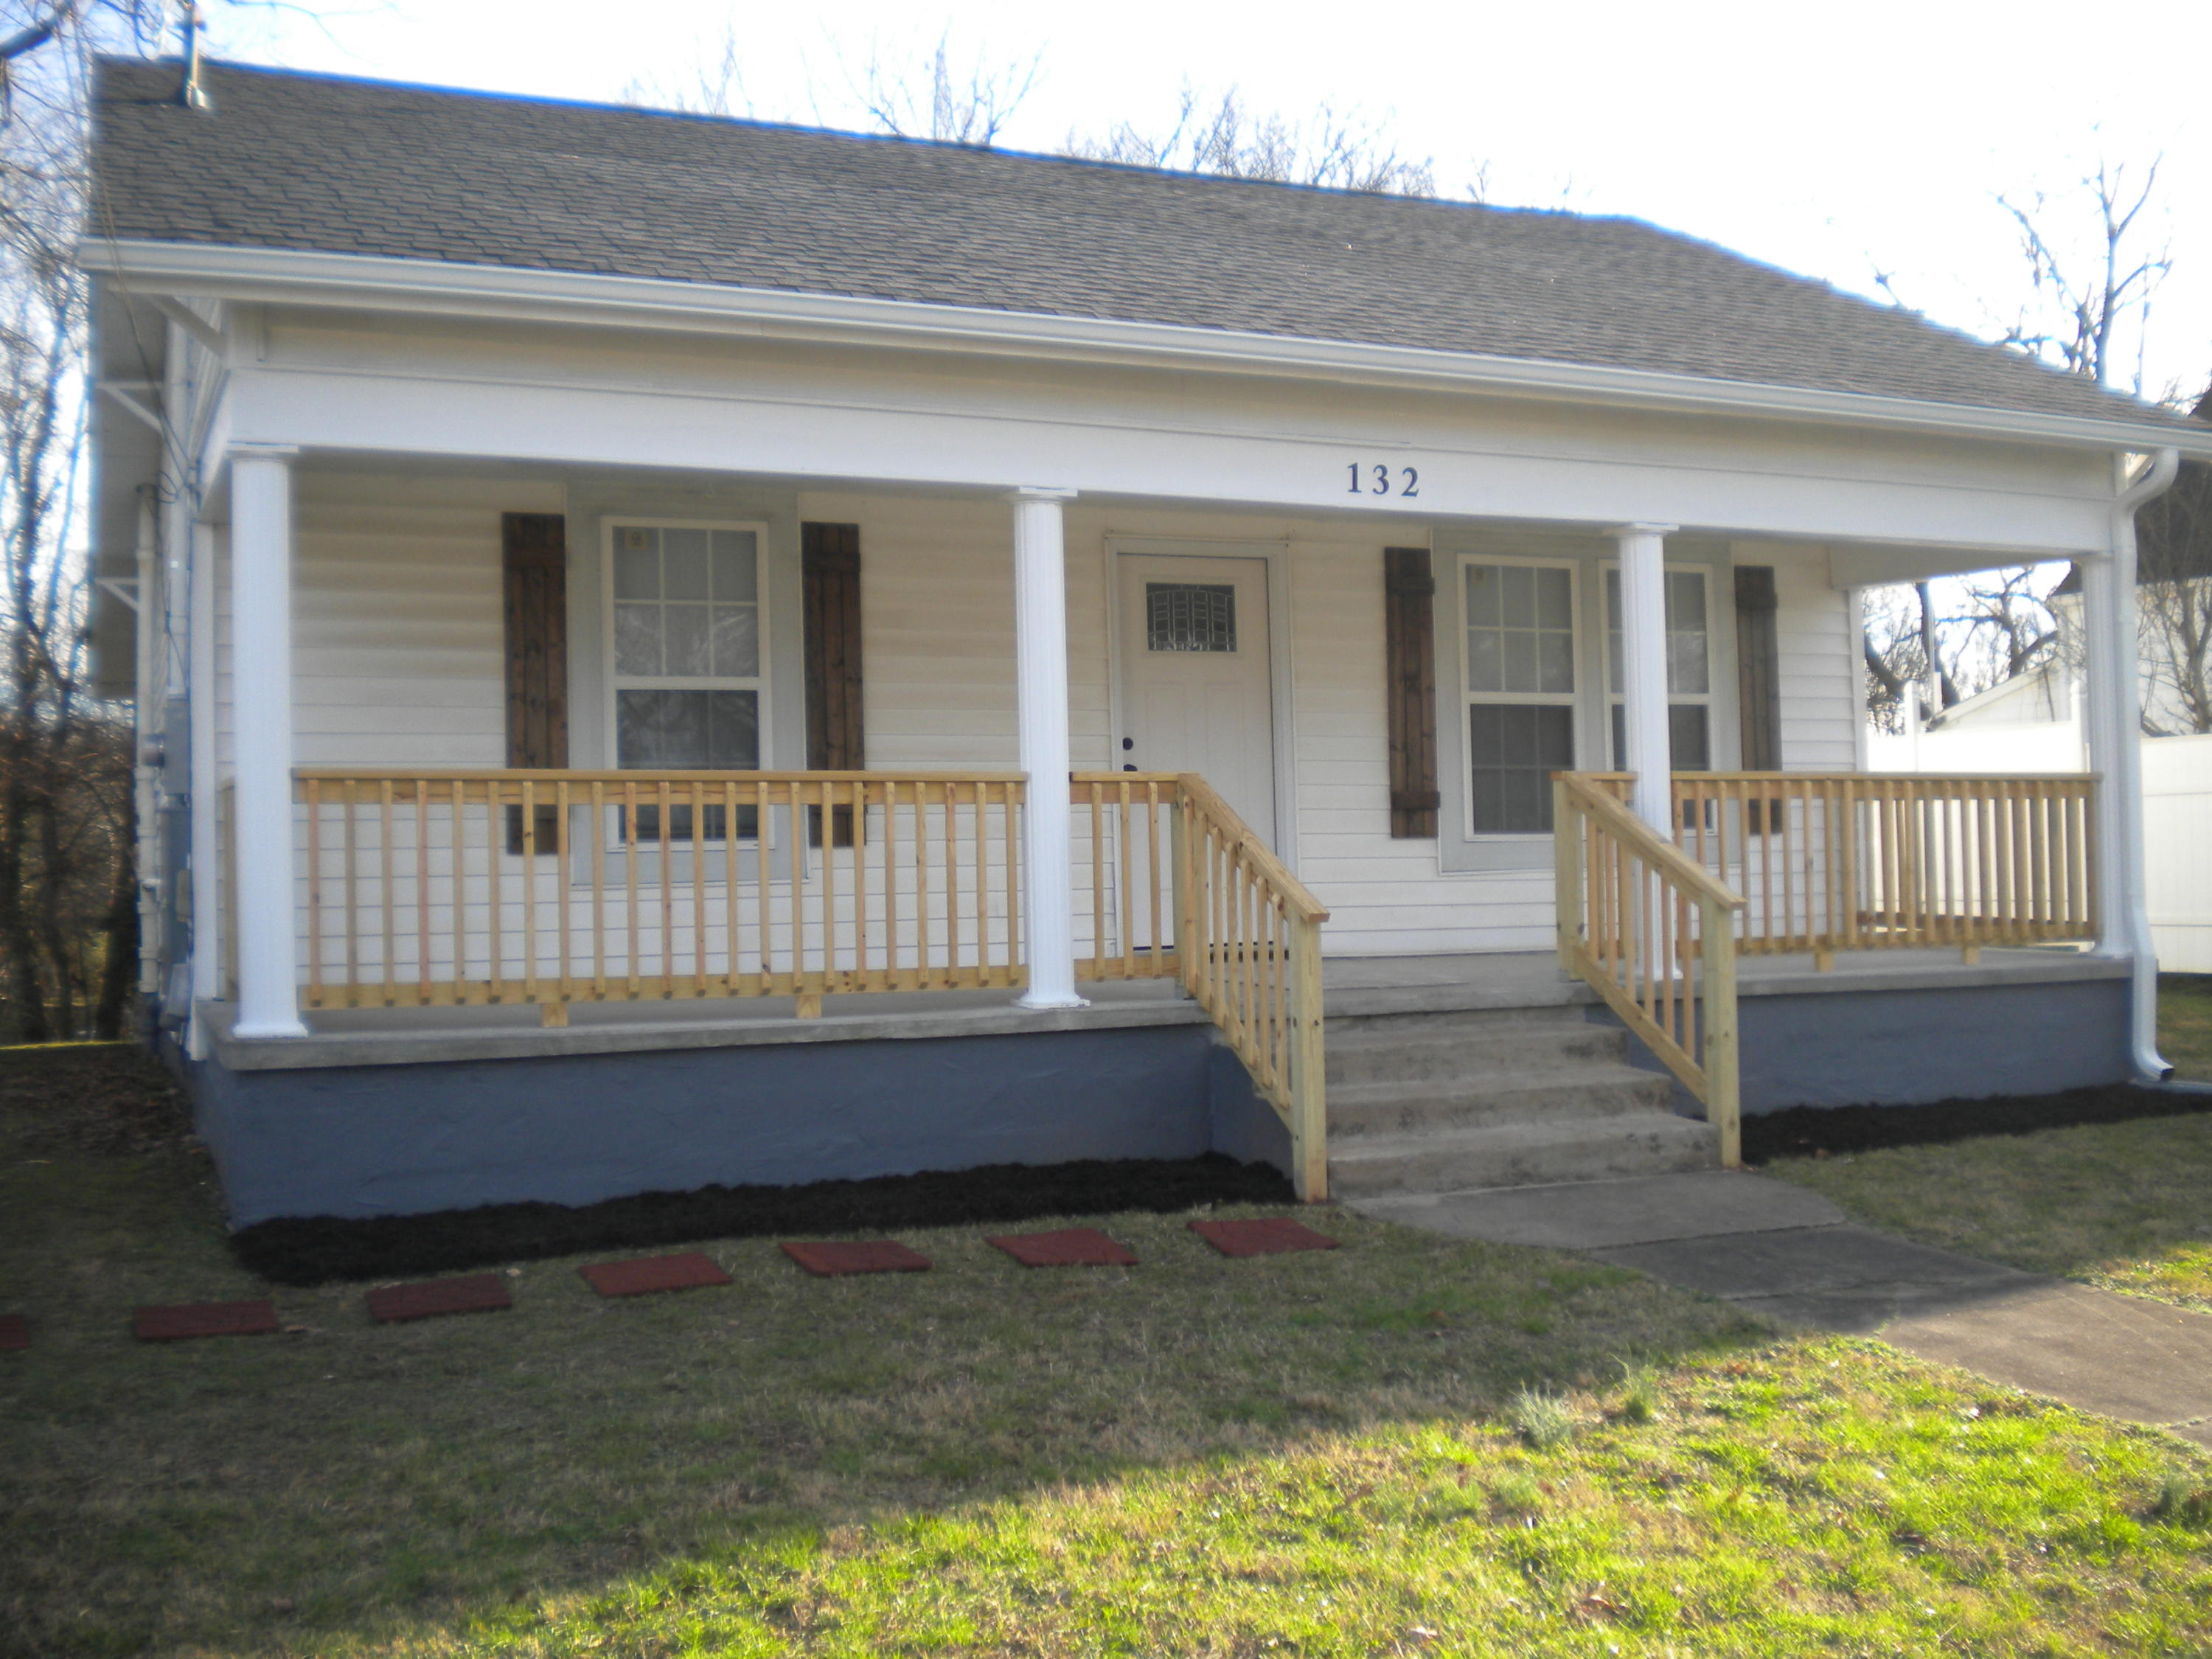 132 Moody Ave, Knoxville, Tennessee 37920, 2 Bedrooms Bedrooms, ,1 BathroomBathrooms,Single Family,For Sale,Moody,1105337